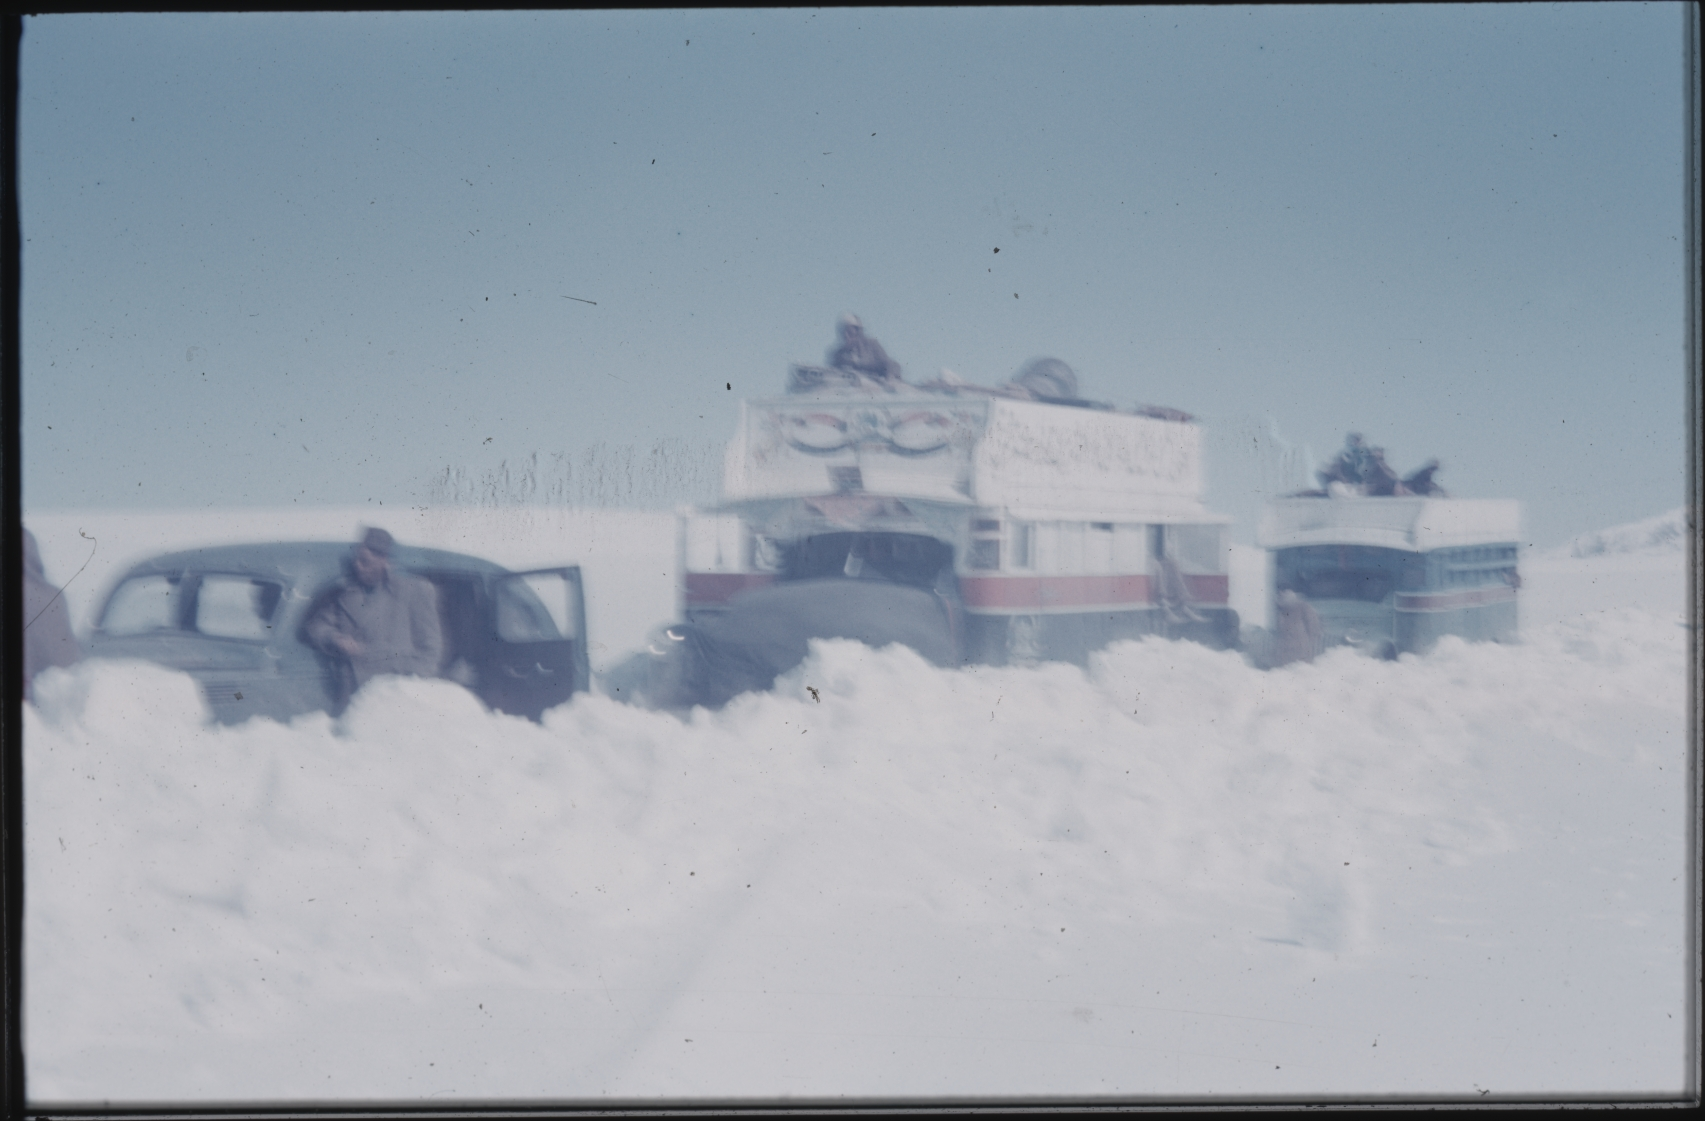 A massive snowfall has blocked the road, leaving the expedition trapped. The Henning Haslund-Christensen Memorial Expedition, 1953-'55. Photo: the Moesgaard Museum archives